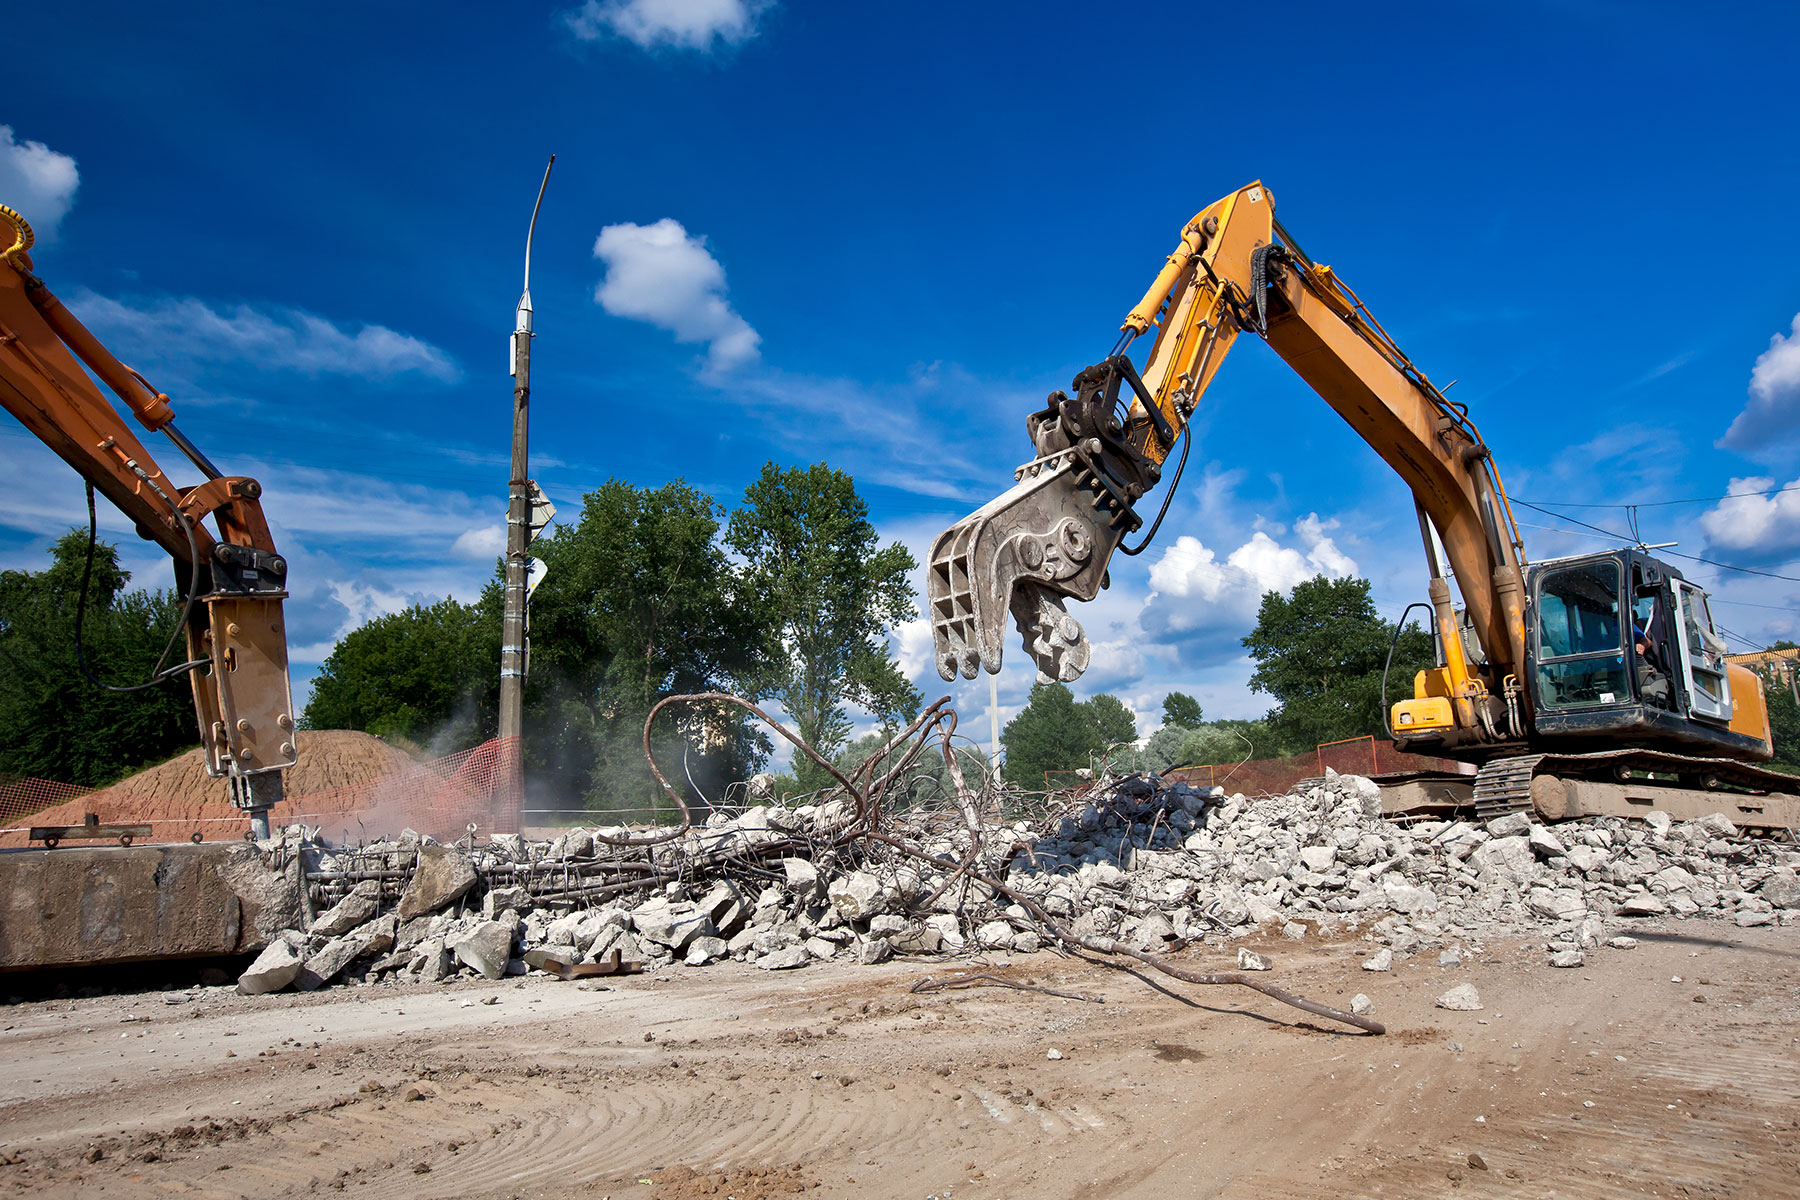 Demolition melbourne victoria earthmoving group melbourne excavation earth moving for Cost to demo interior of house